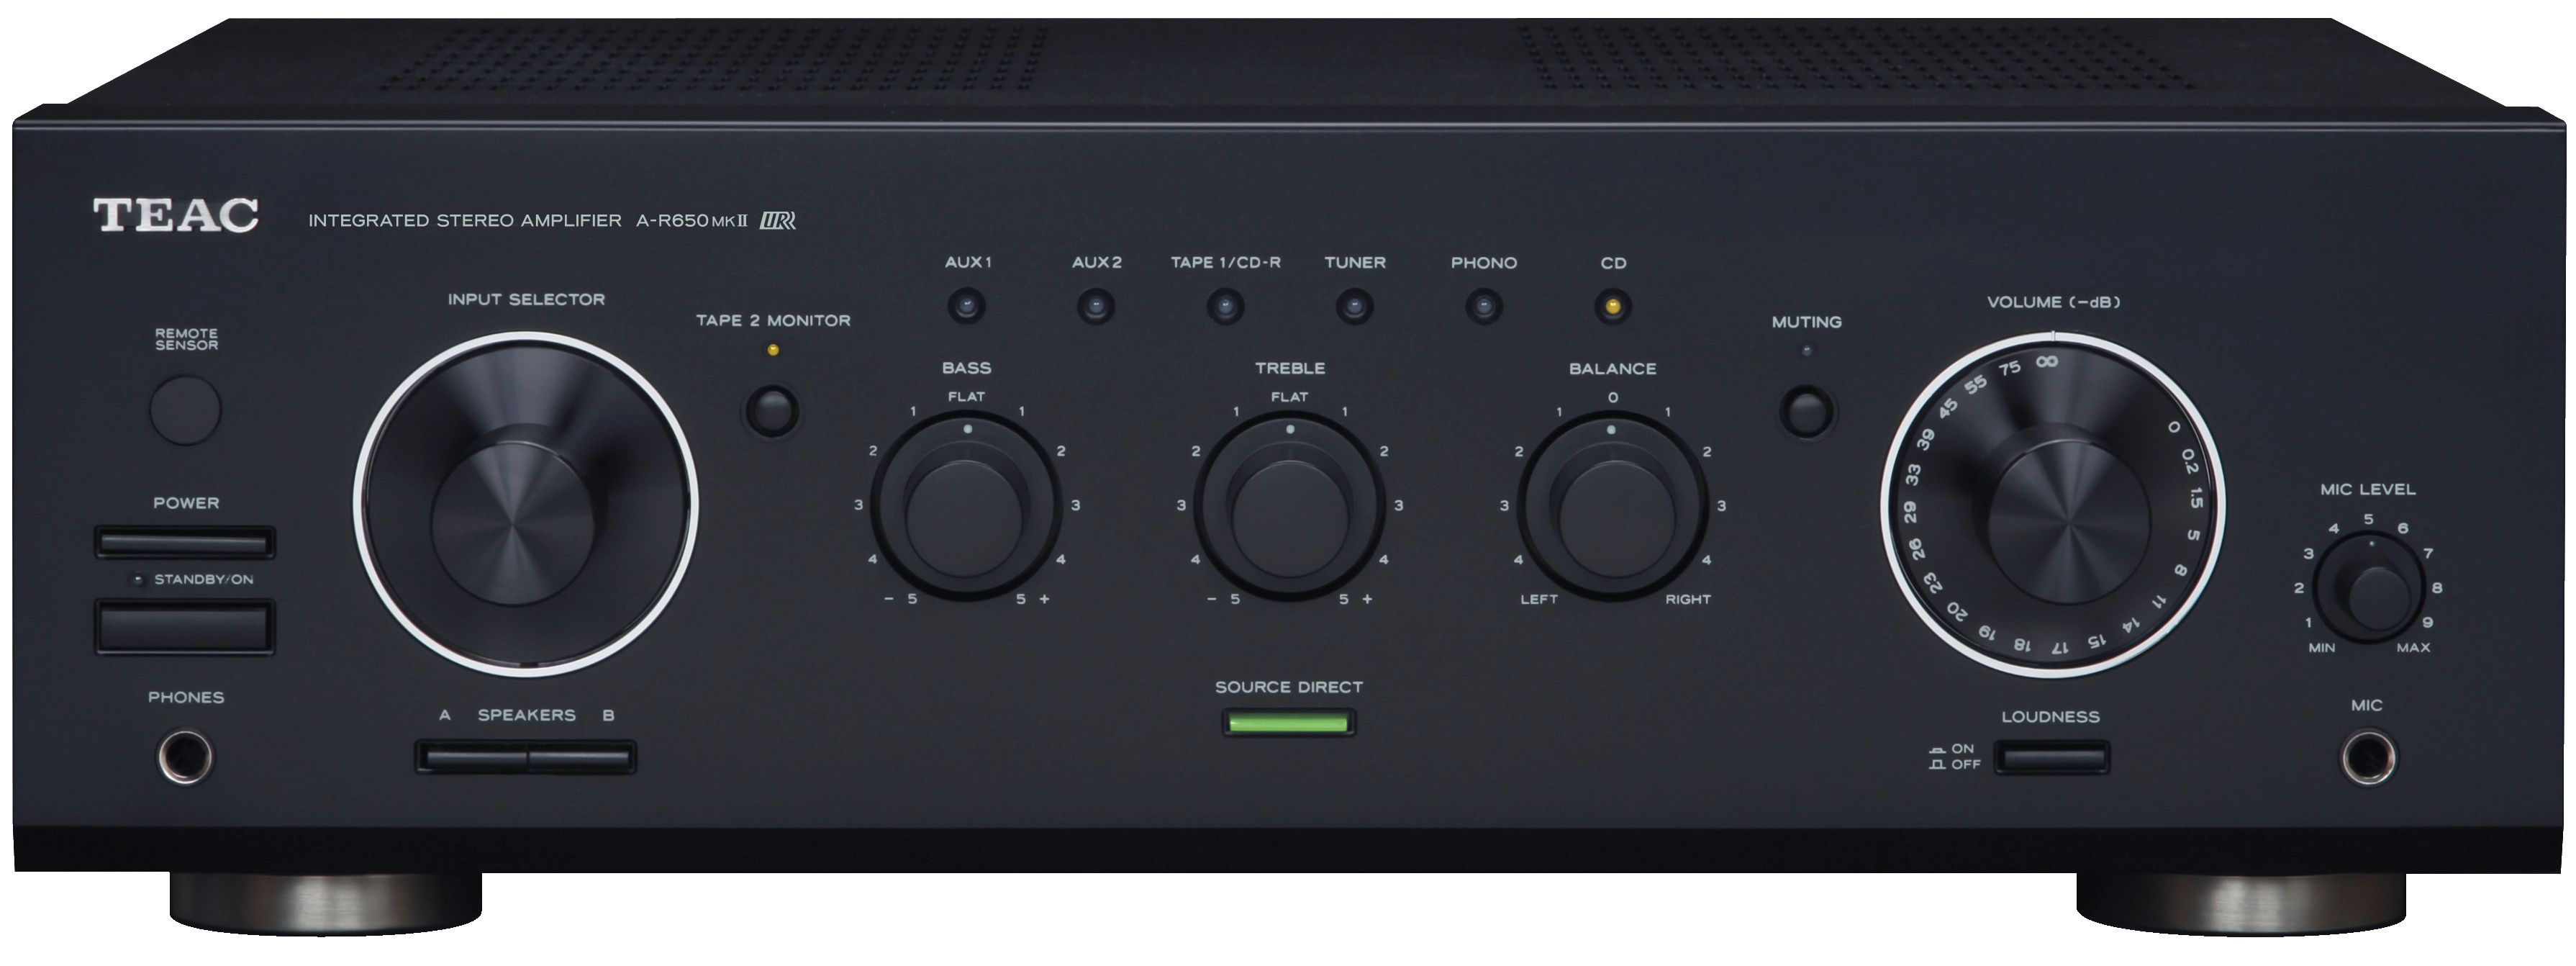 teac a r650 mkii integrated amplifier ar650mkii